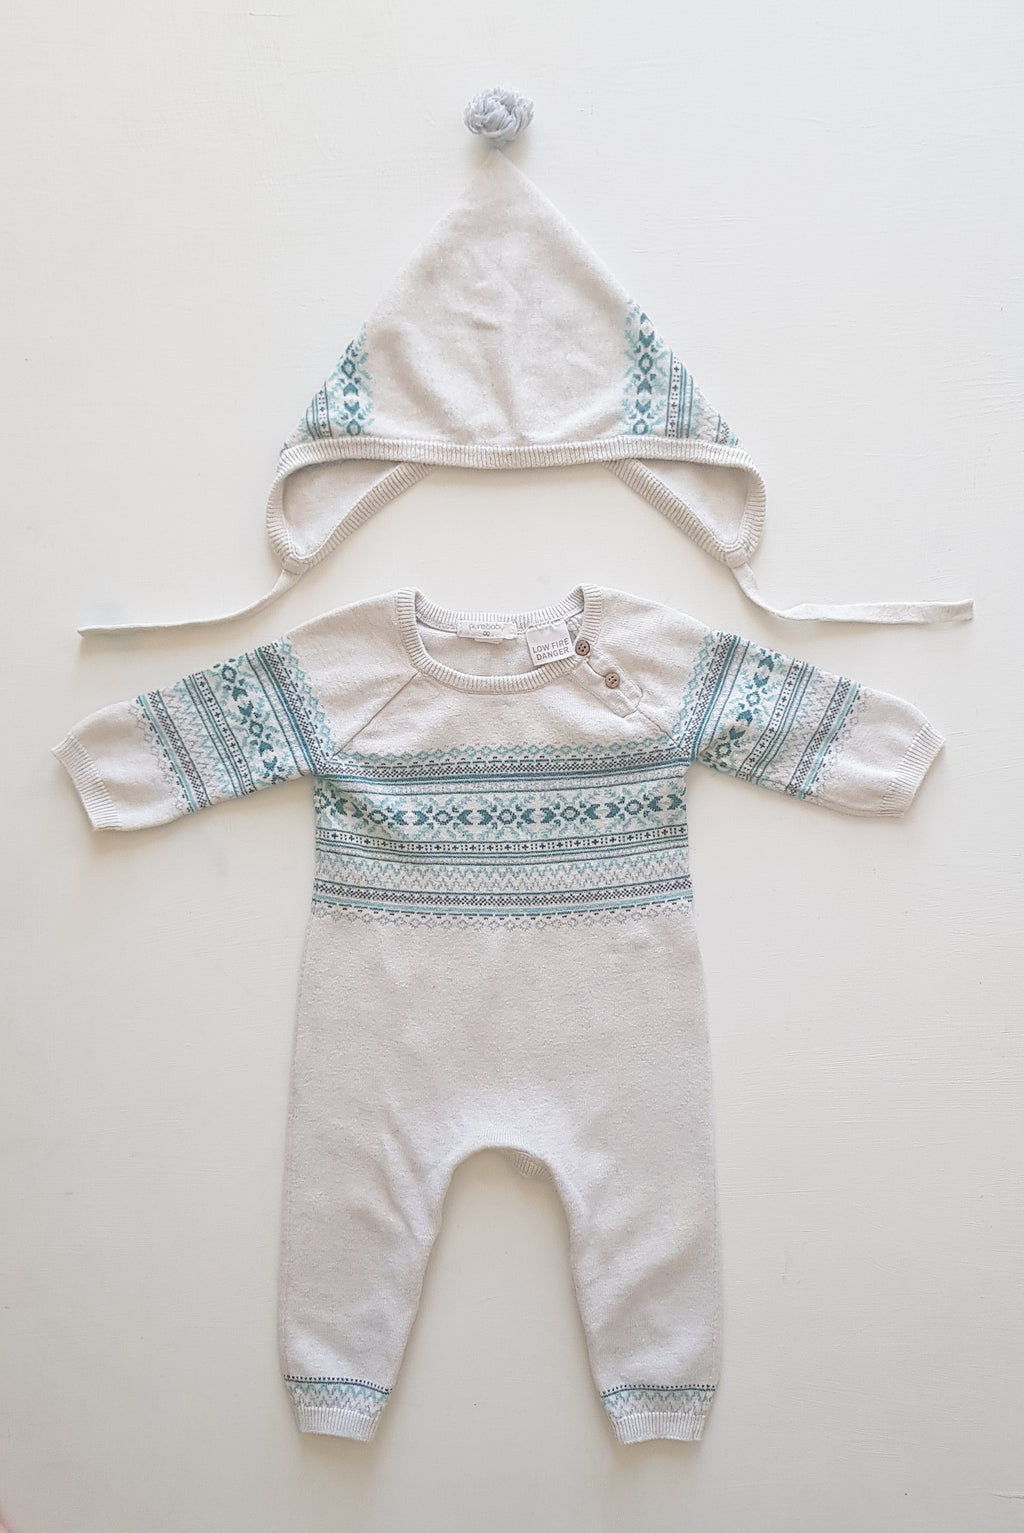 THRIFT Purebaby - Winter Knitted Set Size 00